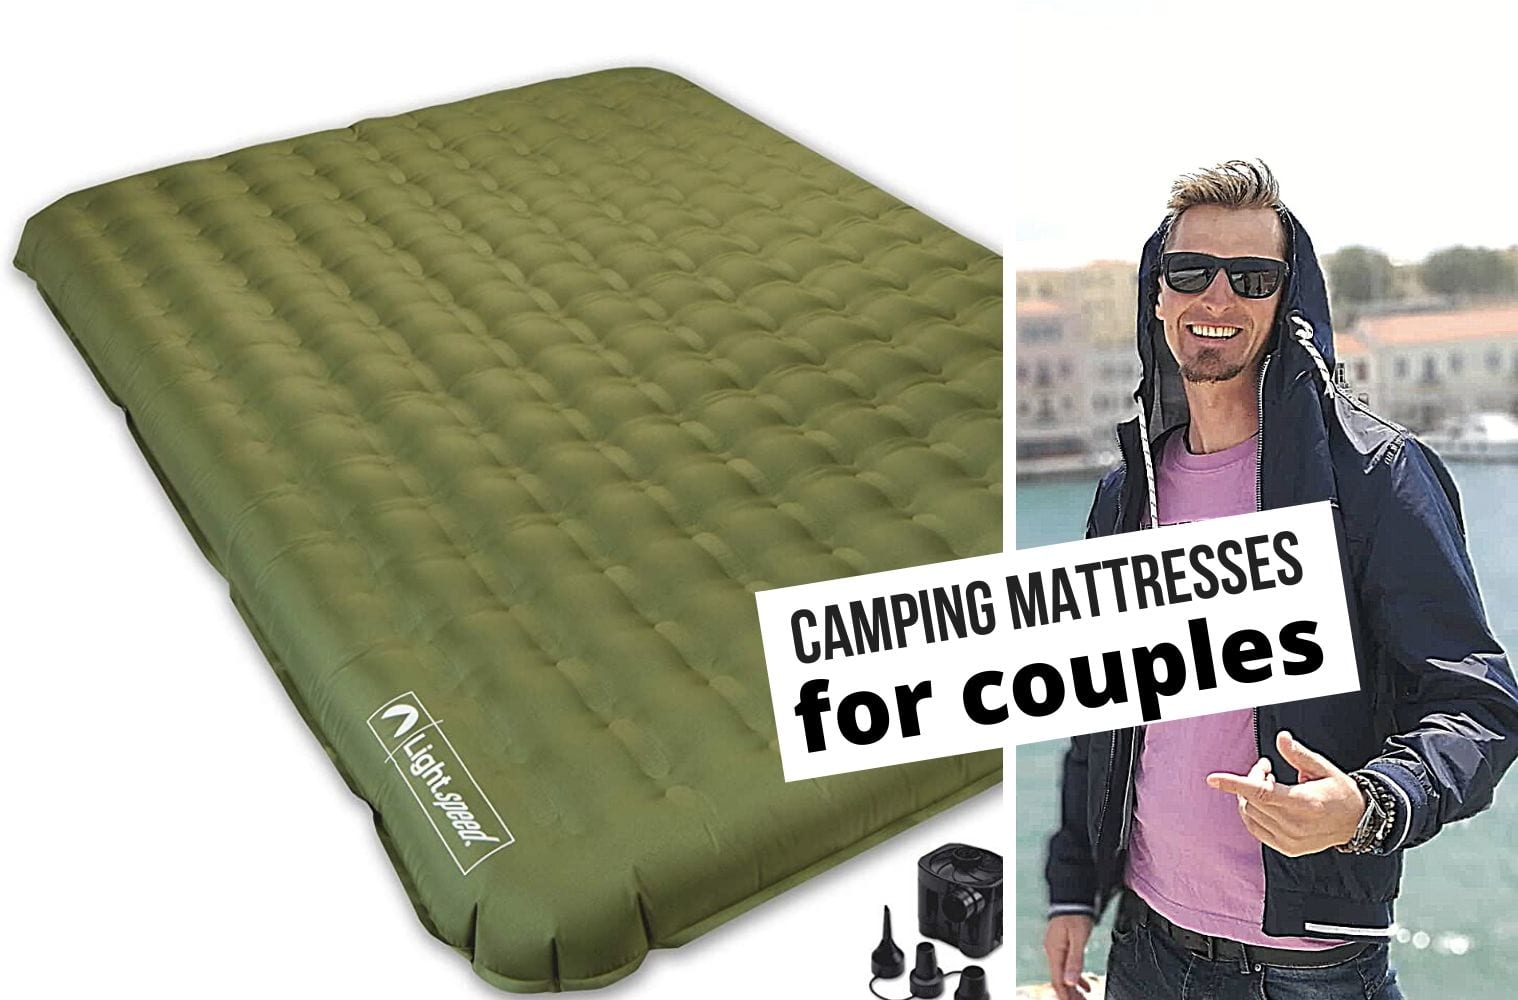 6 Best Camping Mattresses For Couples To Check Out In 2020